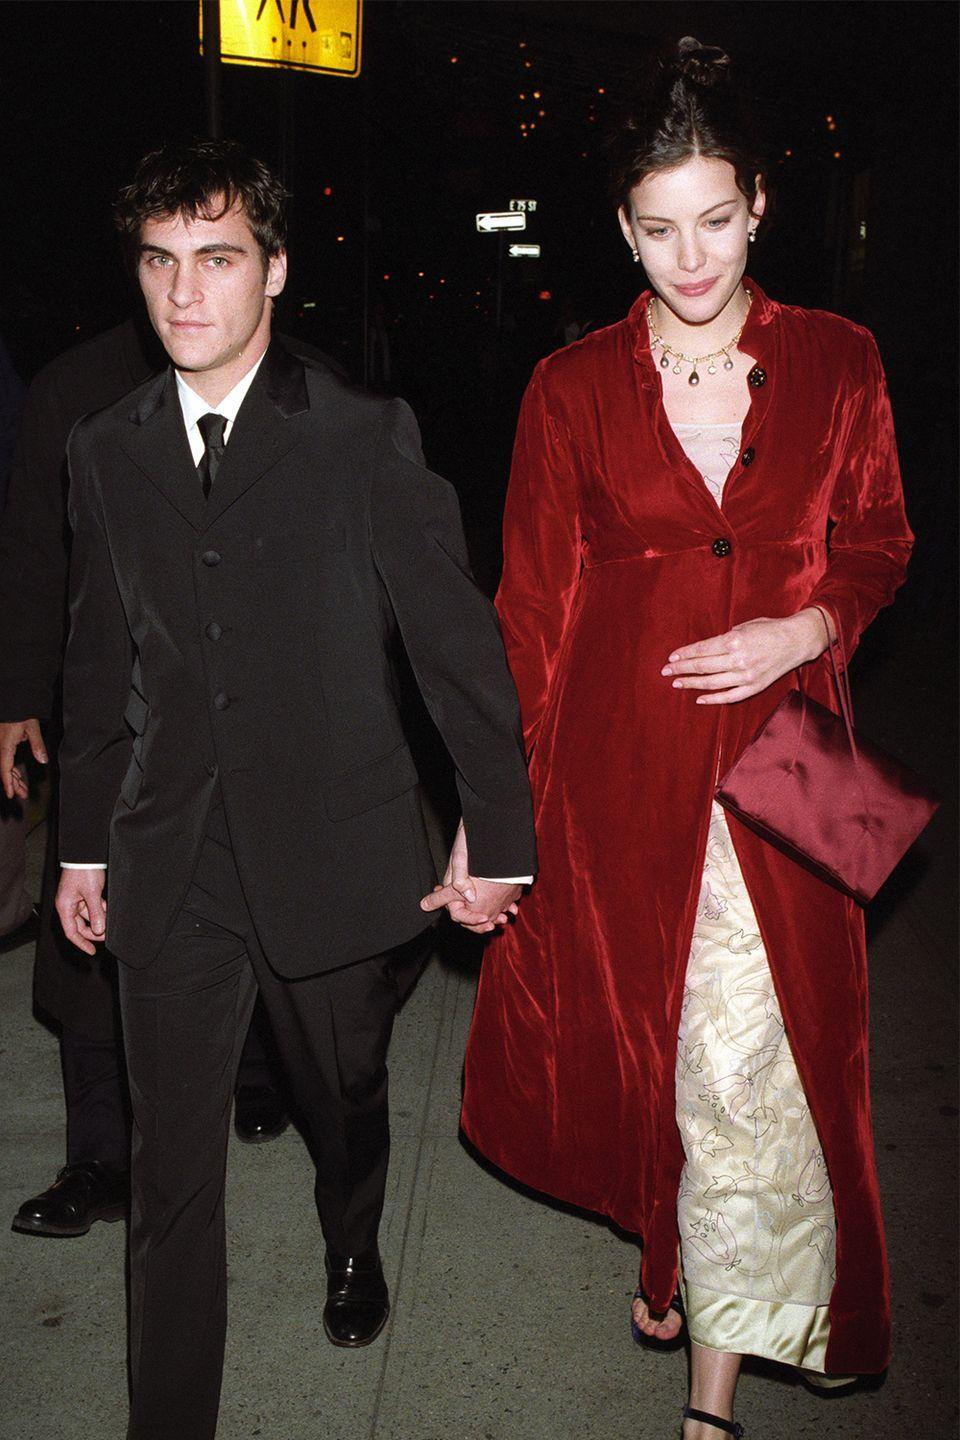 """<p>Liv Tyler and Joaquin Phoenix began dating when they were just 18 years old. Tyler told <em><a href=""""https://www.elle.com/culture/movies-tv/interviews/a31492/liv-tyler-the-leftovers/"""" rel=""""nofollow noopener"""" target=""""_blank"""" data-ylk=""""slk:Elle Magazine"""" class=""""link rapid-noclick-resp"""">Elle Magazine</a></em> that despite their breakup, they are still friends because he was such a big part of her life. </p><p>""""I'm friends with all my exes! I love them so much! I guess it depends on what happens, right? I consider Joaquin and all of his sisters to be like family. We were so young when we were together, like 18 to 21. He was my first love. So he's a huge part of even my sense of humor,"""" she said in the interview.<br></p>"""